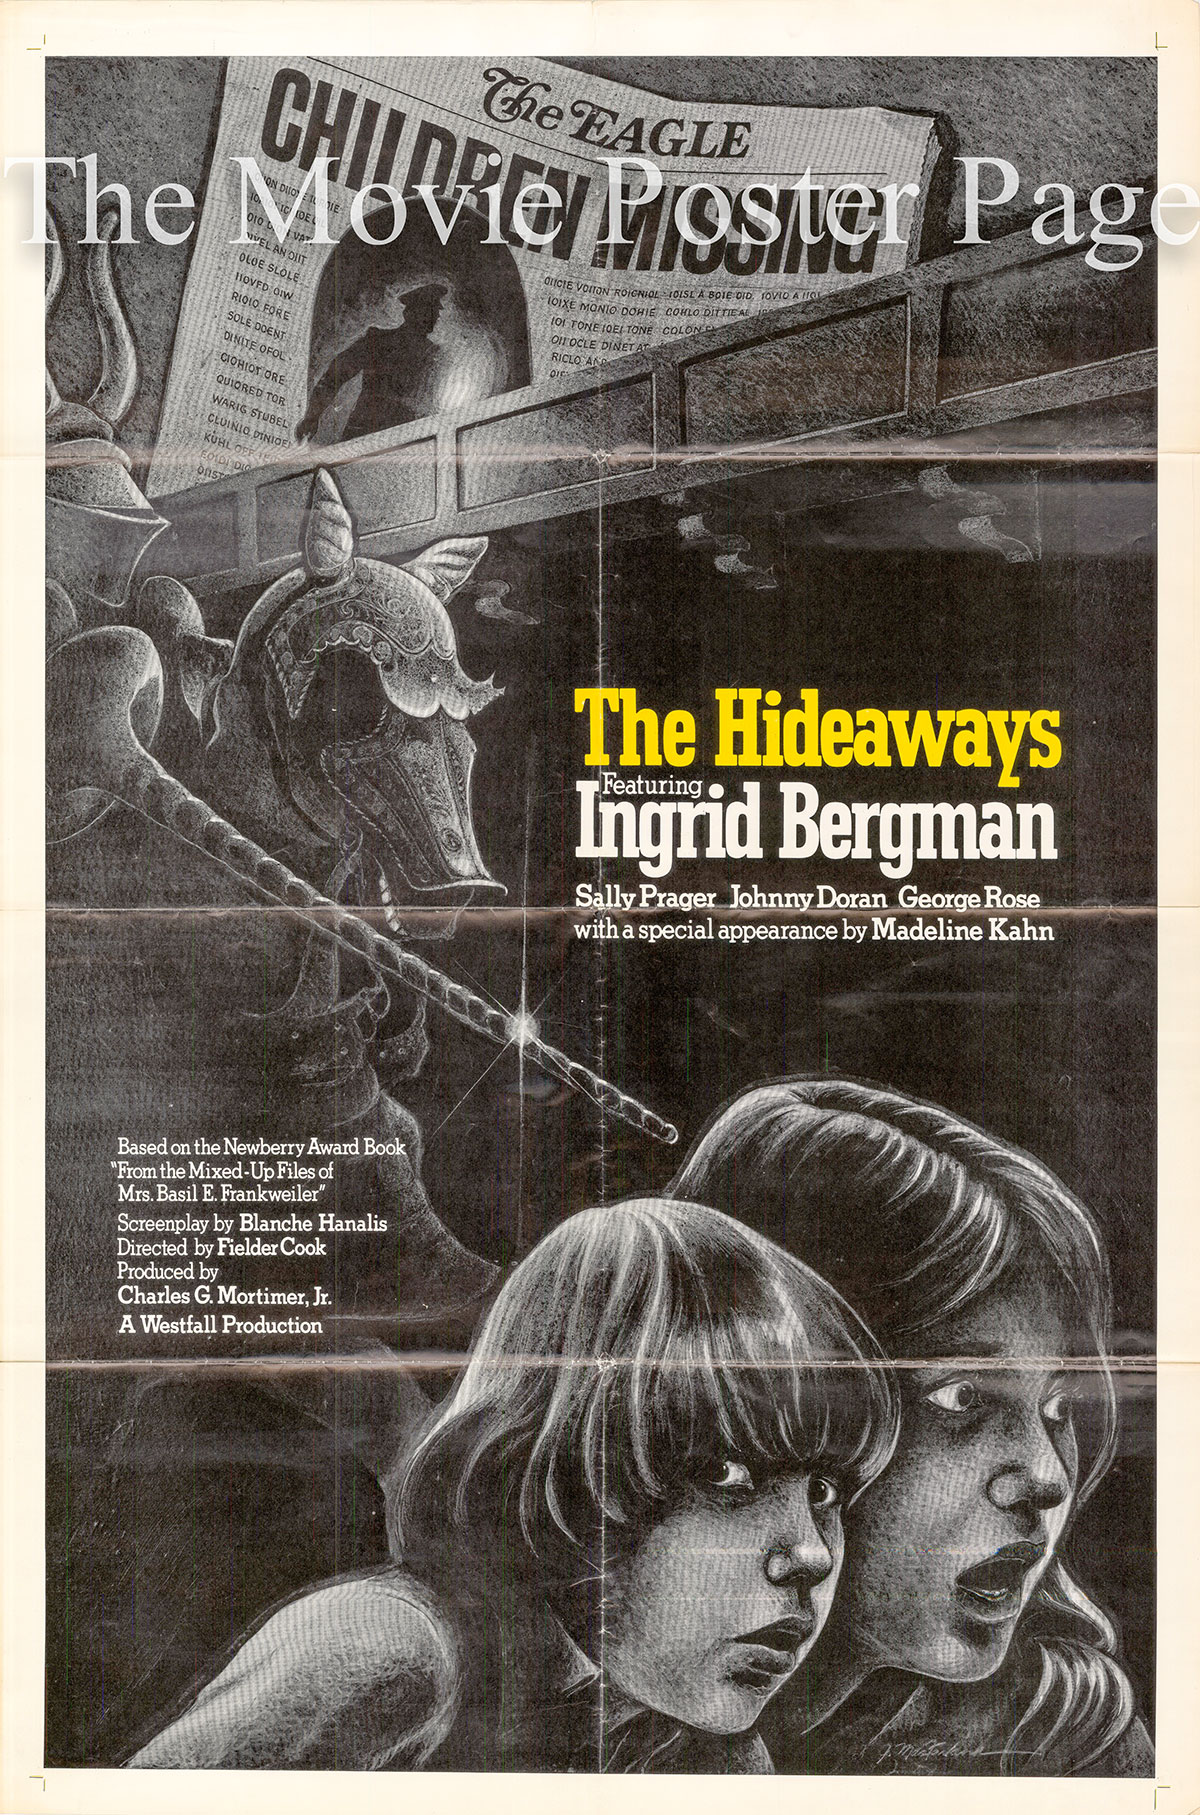 Pictured is a US one-sheet poster for the 1973 Fielder Cook film The Hideaways starring Ingrid Bergman.